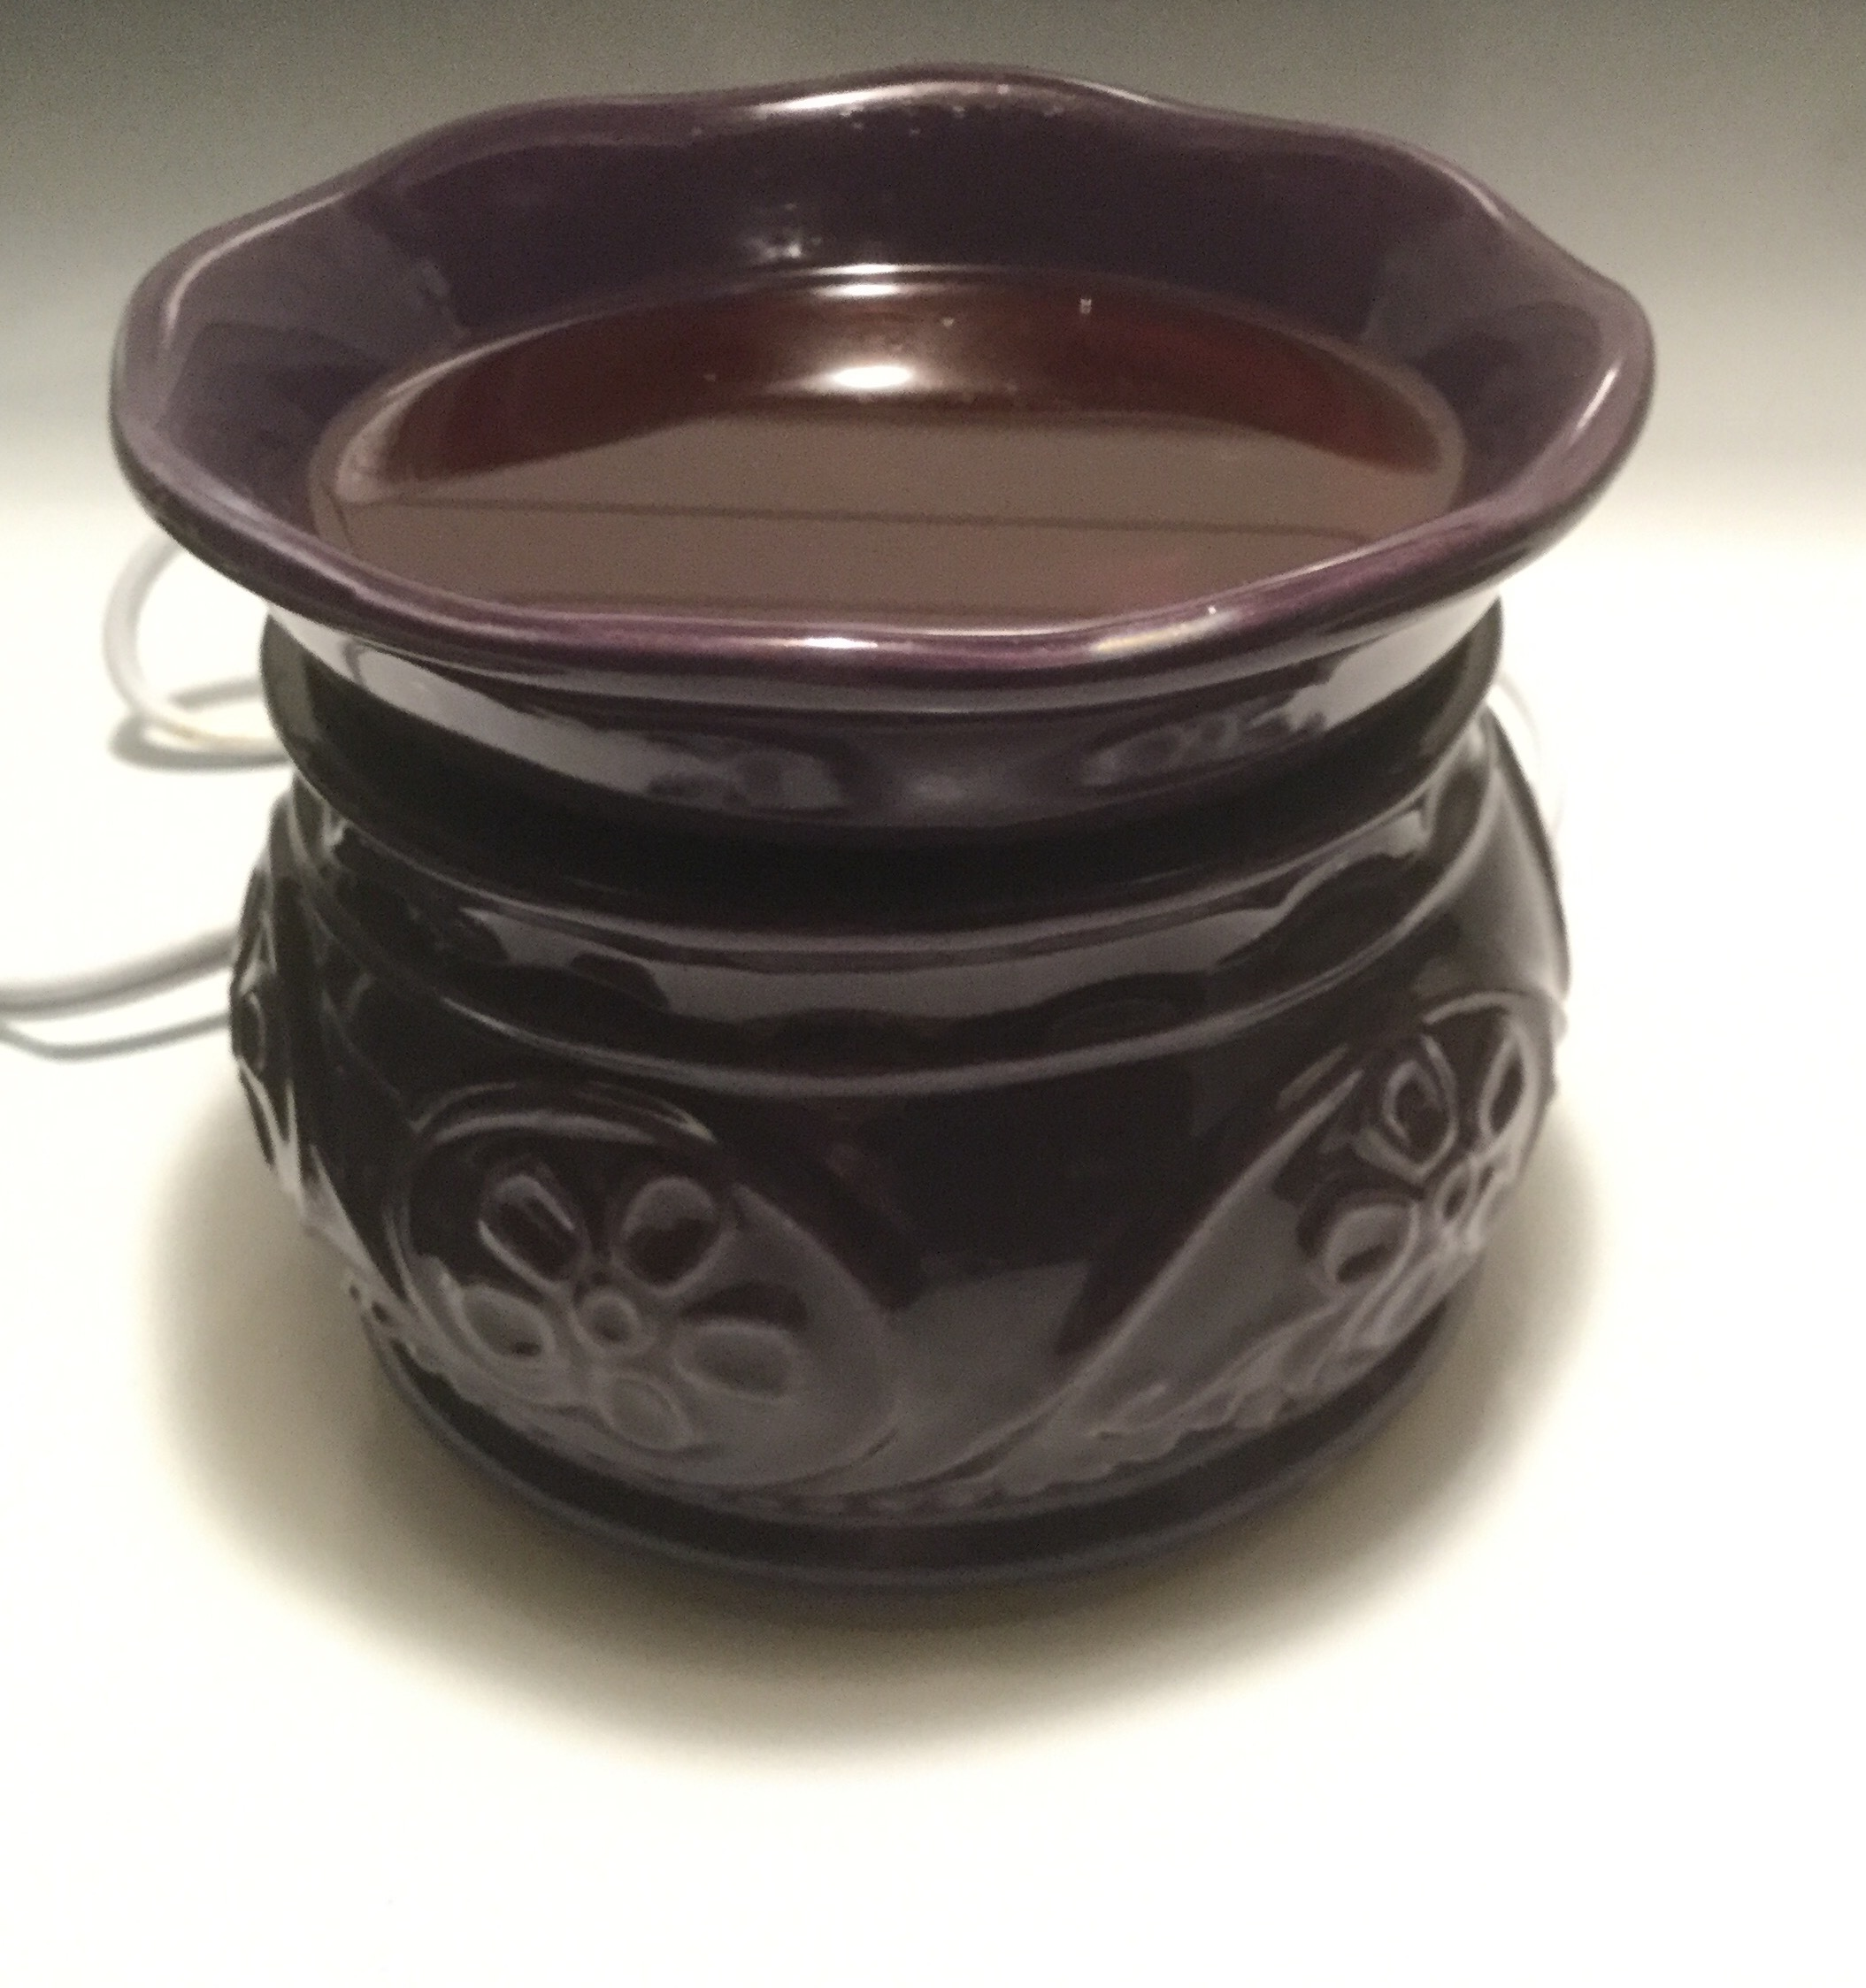 Wax Melt Warmers ~ Glade wax melts warmer reviews in household cleaning